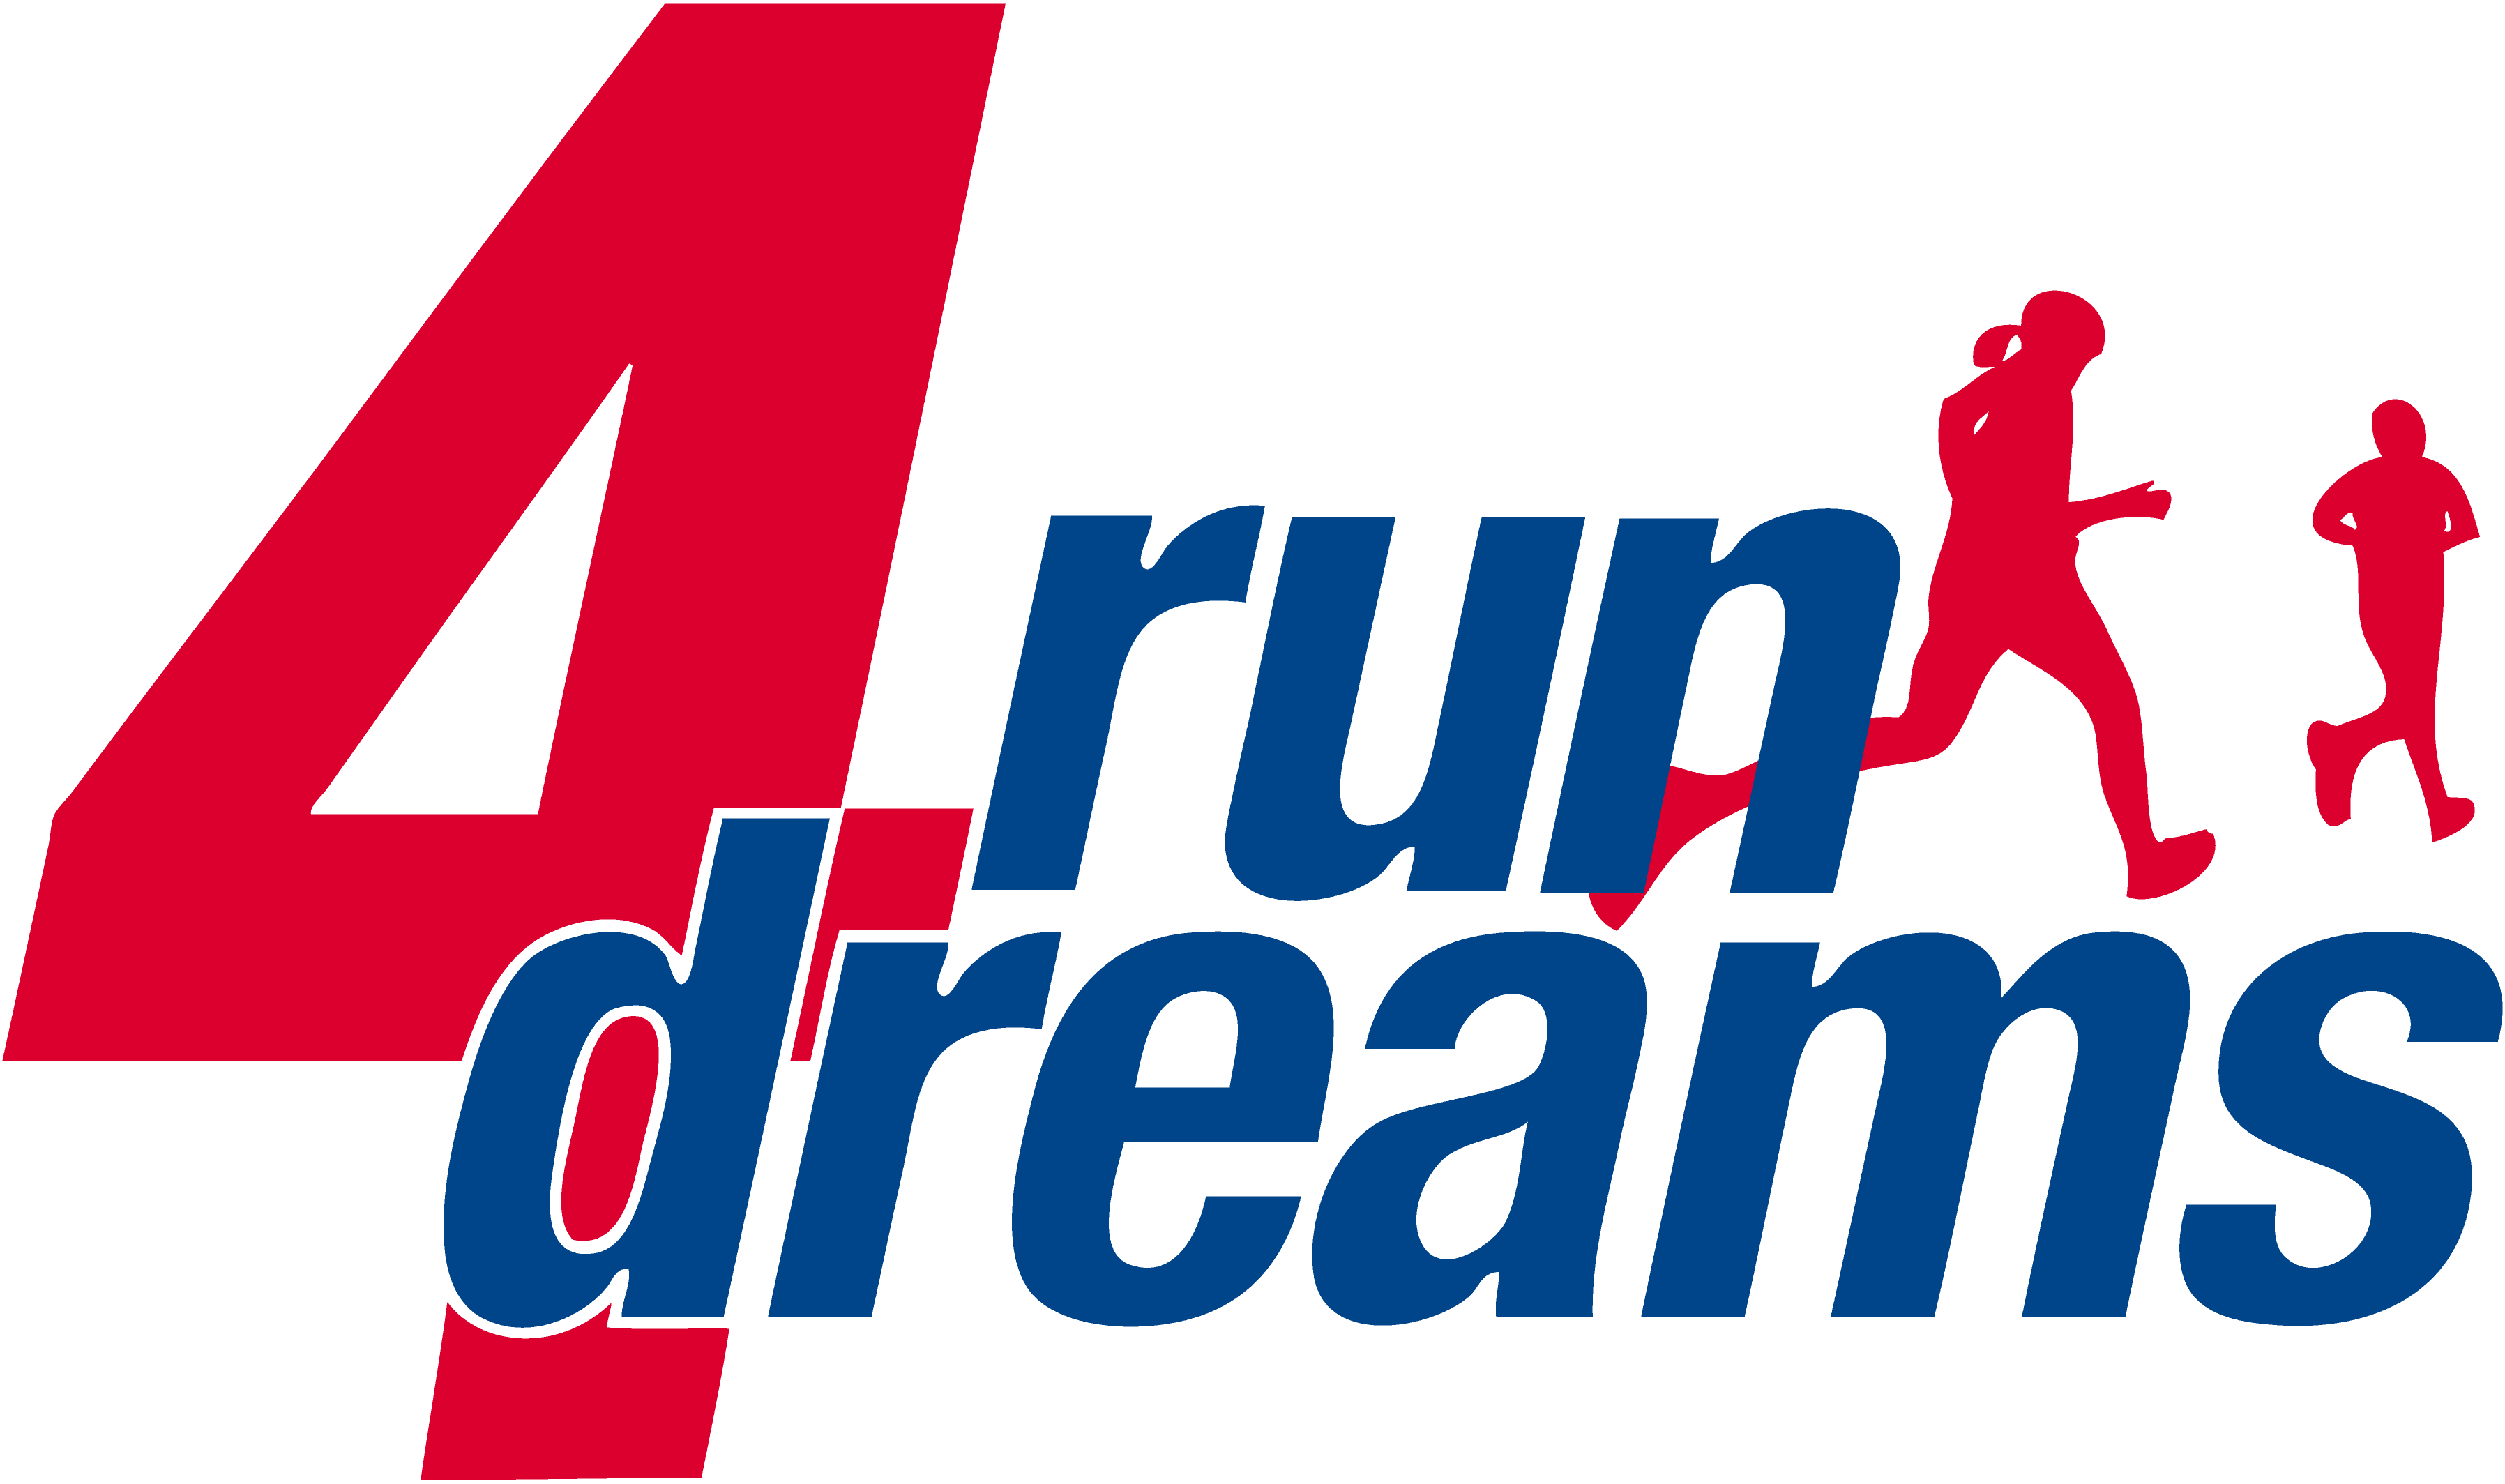 logo run4dreams mitLaeufer v2